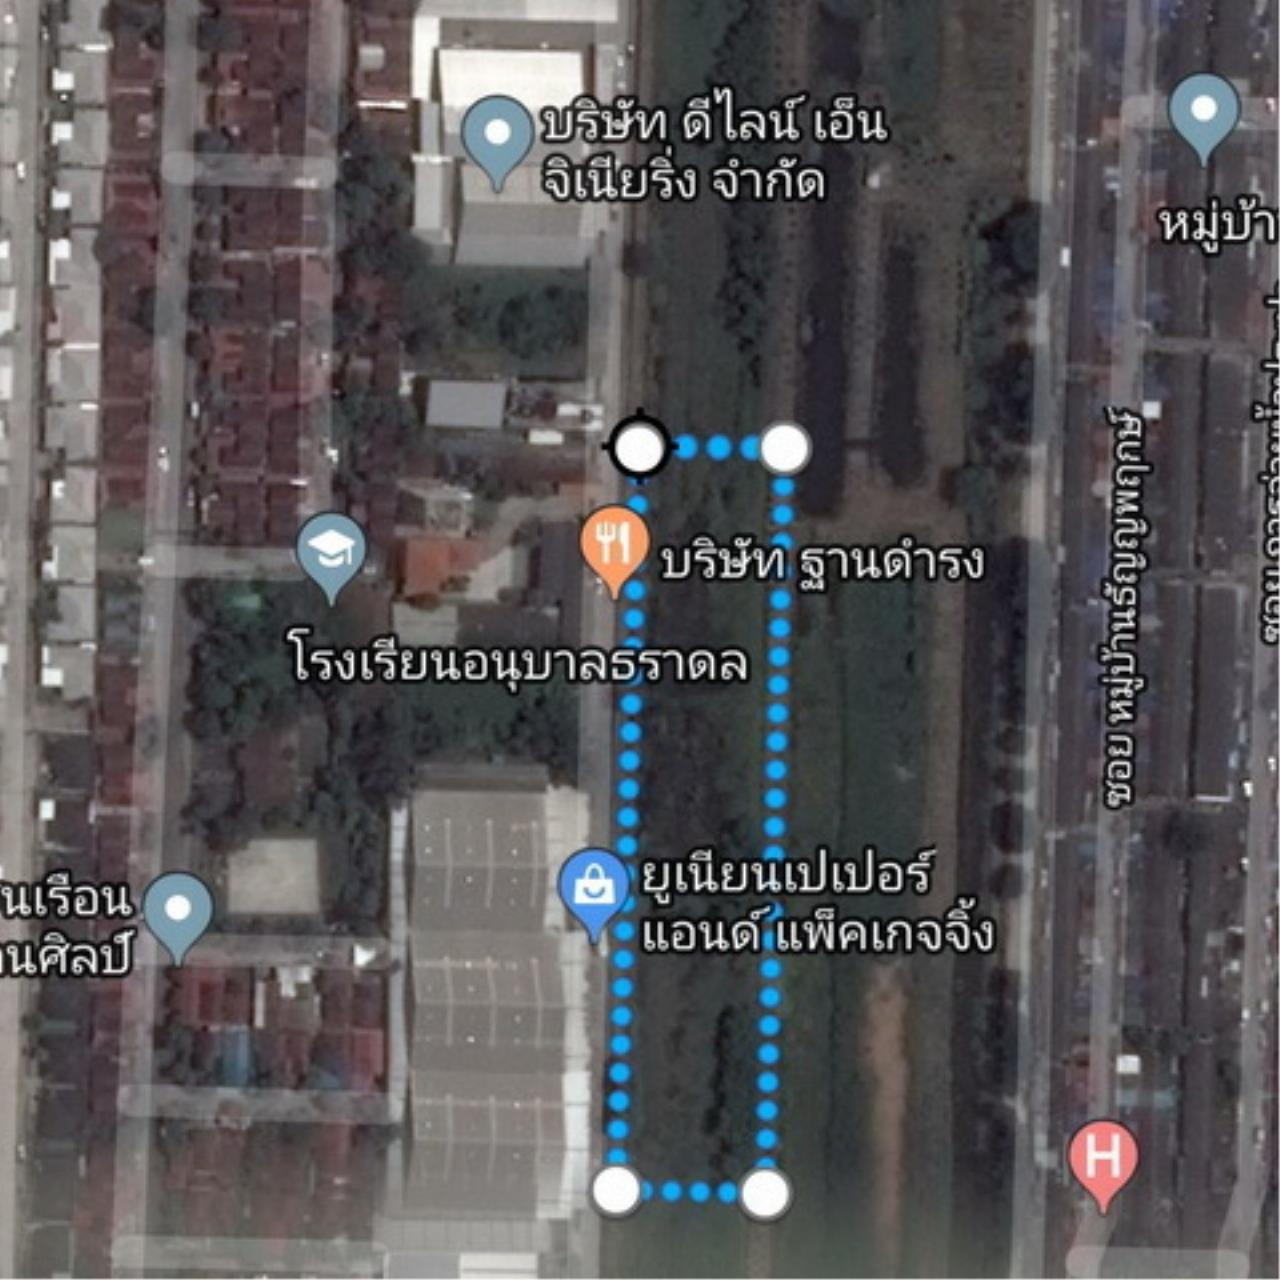 The Agent Property Agency's Klong 7 near Sarasas Vimai Rangsit, Lam Prakan, Pathum Thani, Rangsit-Nakhon Nayok area of 3 rai 2 ngan 84 sqw. Good location, community, market and factory. All apartments in the dorm. 1